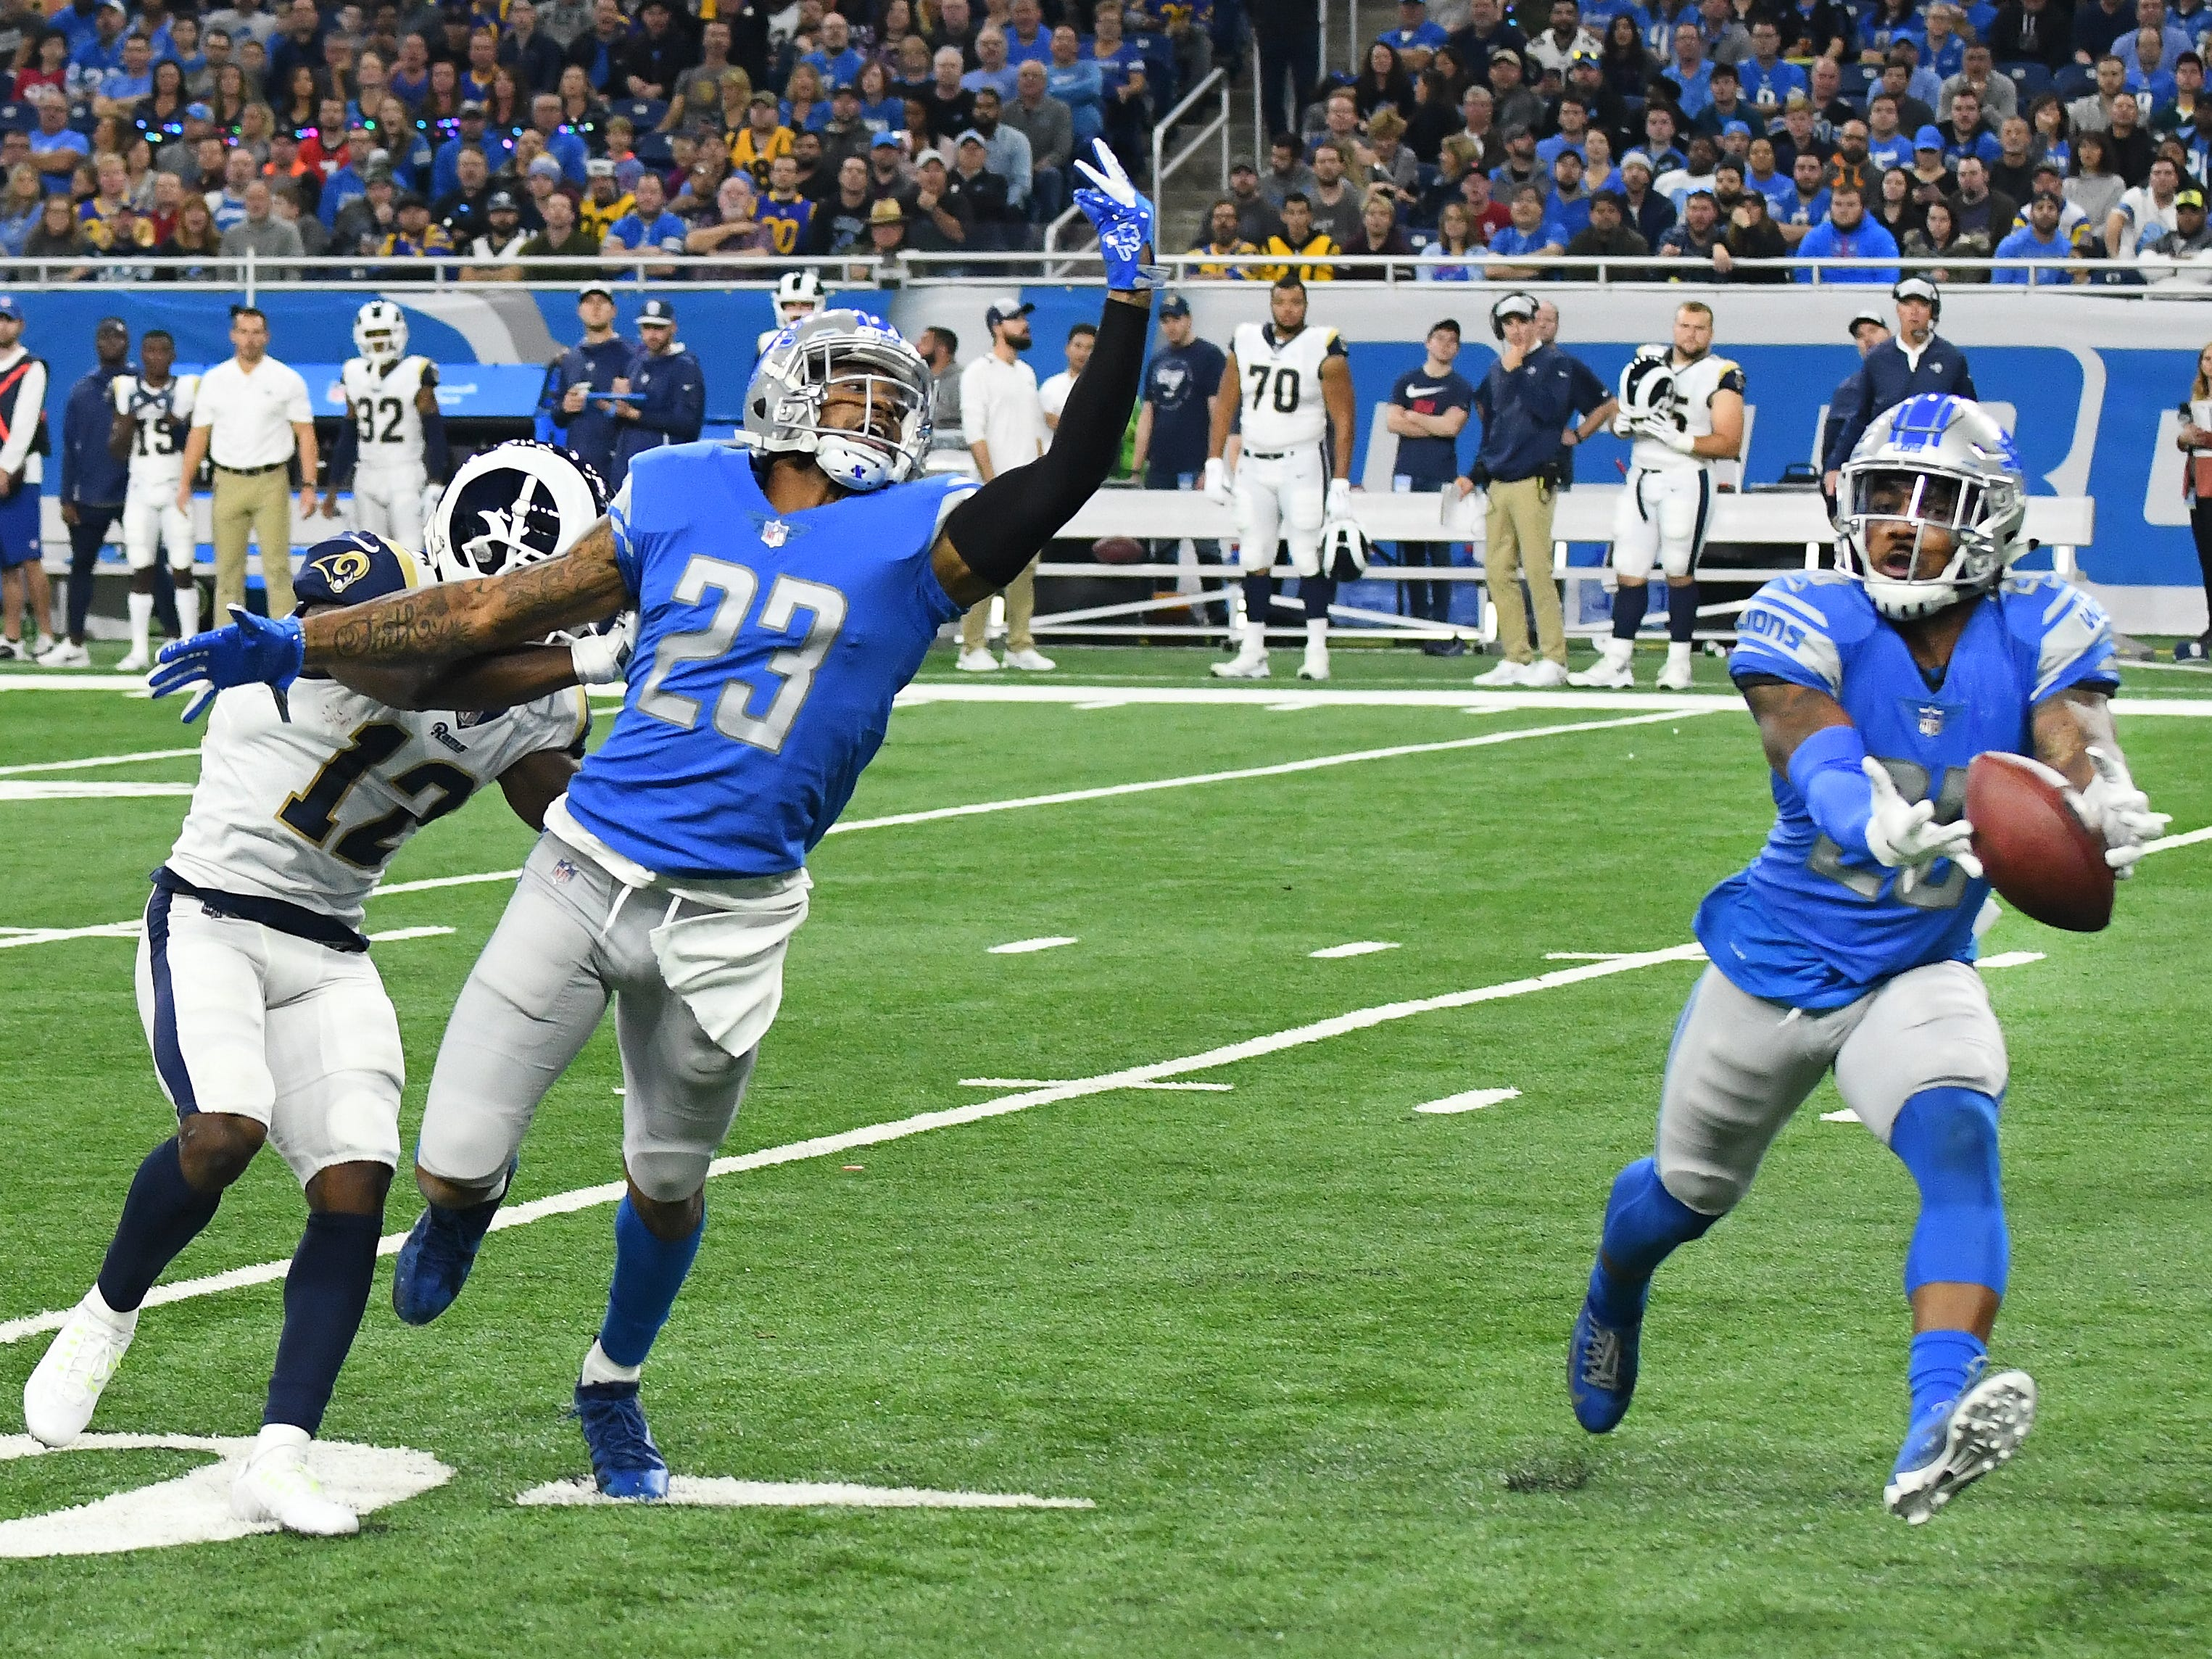 A pass intended for Ram's Brandin Cooks goes over his head as well as over the hand of Lions Darius Slay but waiting is Lions' Quandre Diggs who makes the interception in the second quarter.